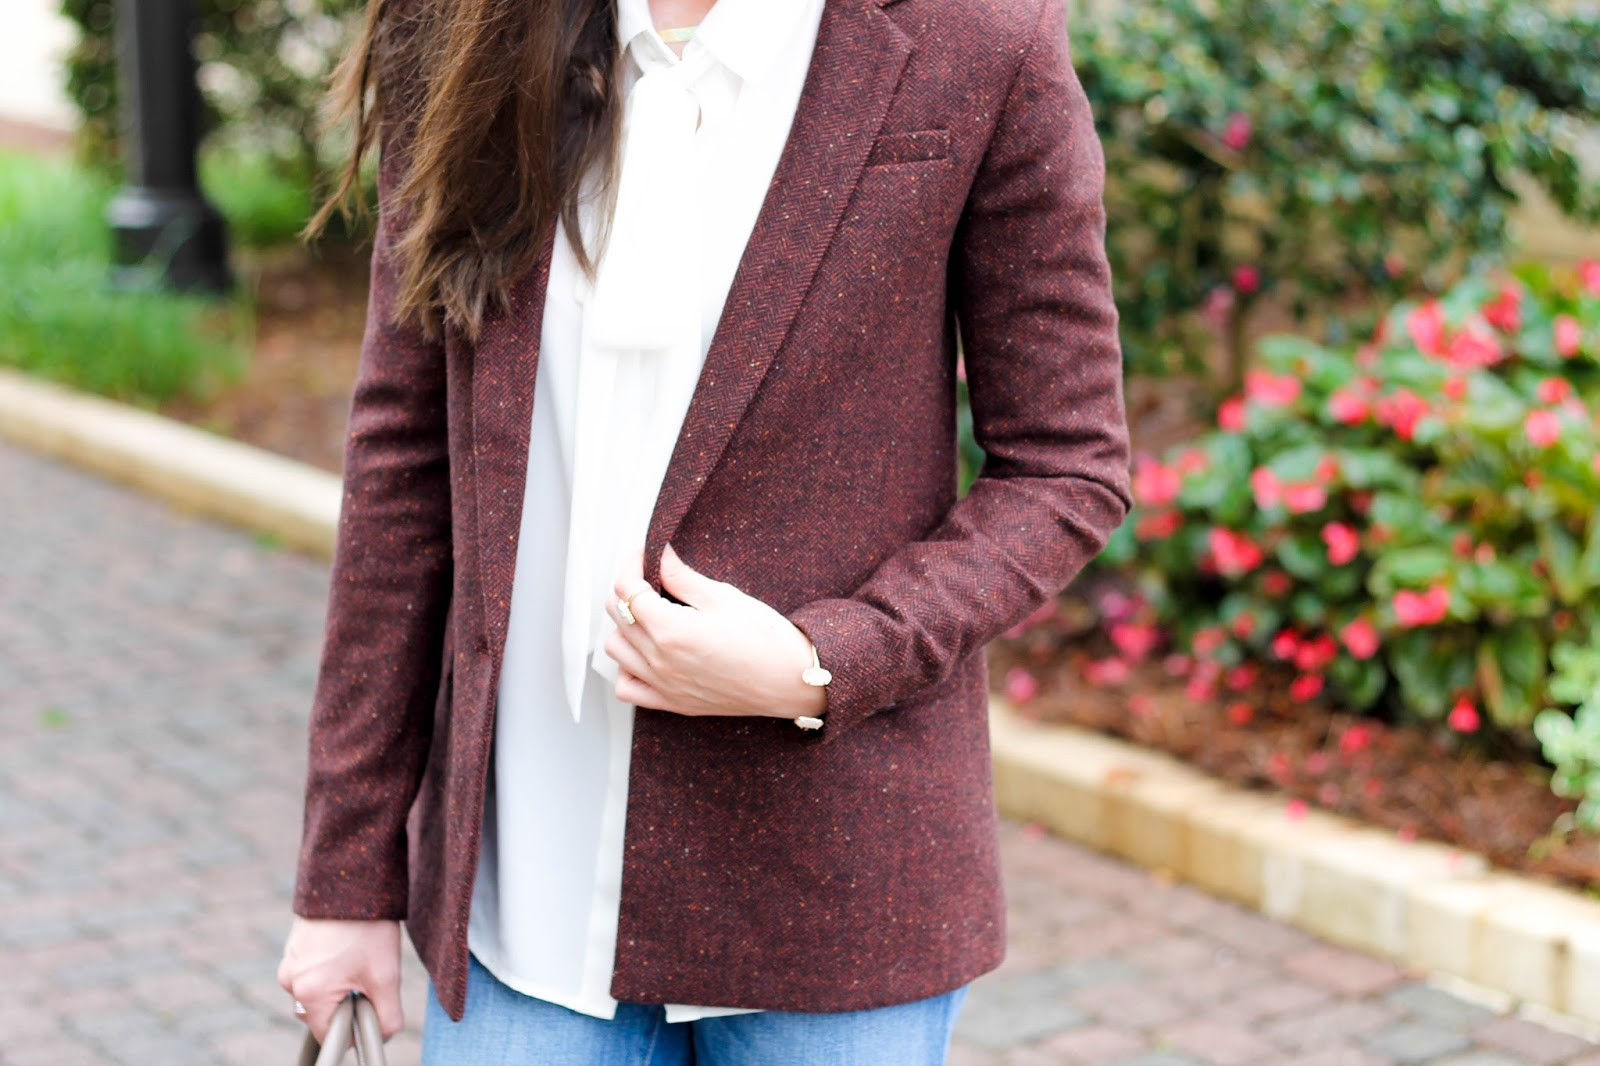 Banana Republic Wool Blend Burgundy Blazer, Business Casual, What to wear to work, work appropriate outfit, blazer for fall, fall outfit, banana republic, white tie neck blouse, loft denim boyfriend jeans, vera bradley satchel, leopard ankle strap shoes, cute fall outfit